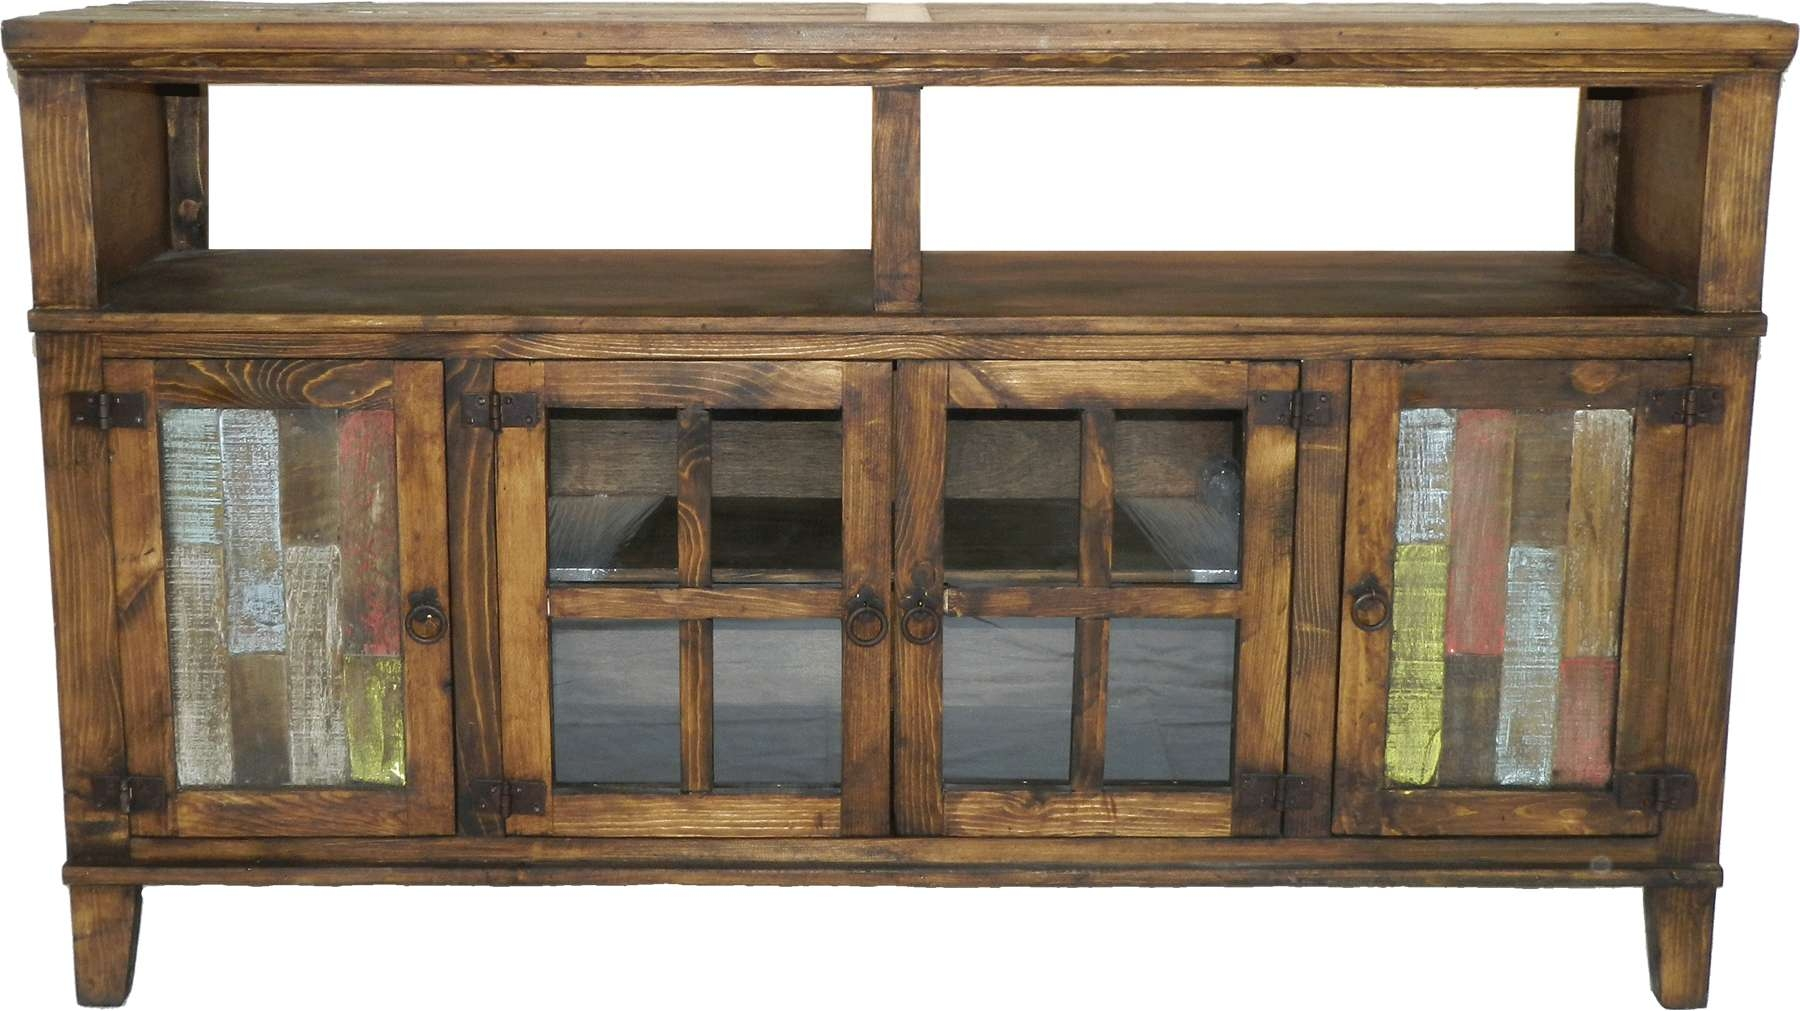 Rustic Tv Console Table Image Collections – Coffee Table Design Ideas Throughout Rustic Tv Stands For Sale (View 2 of 20)